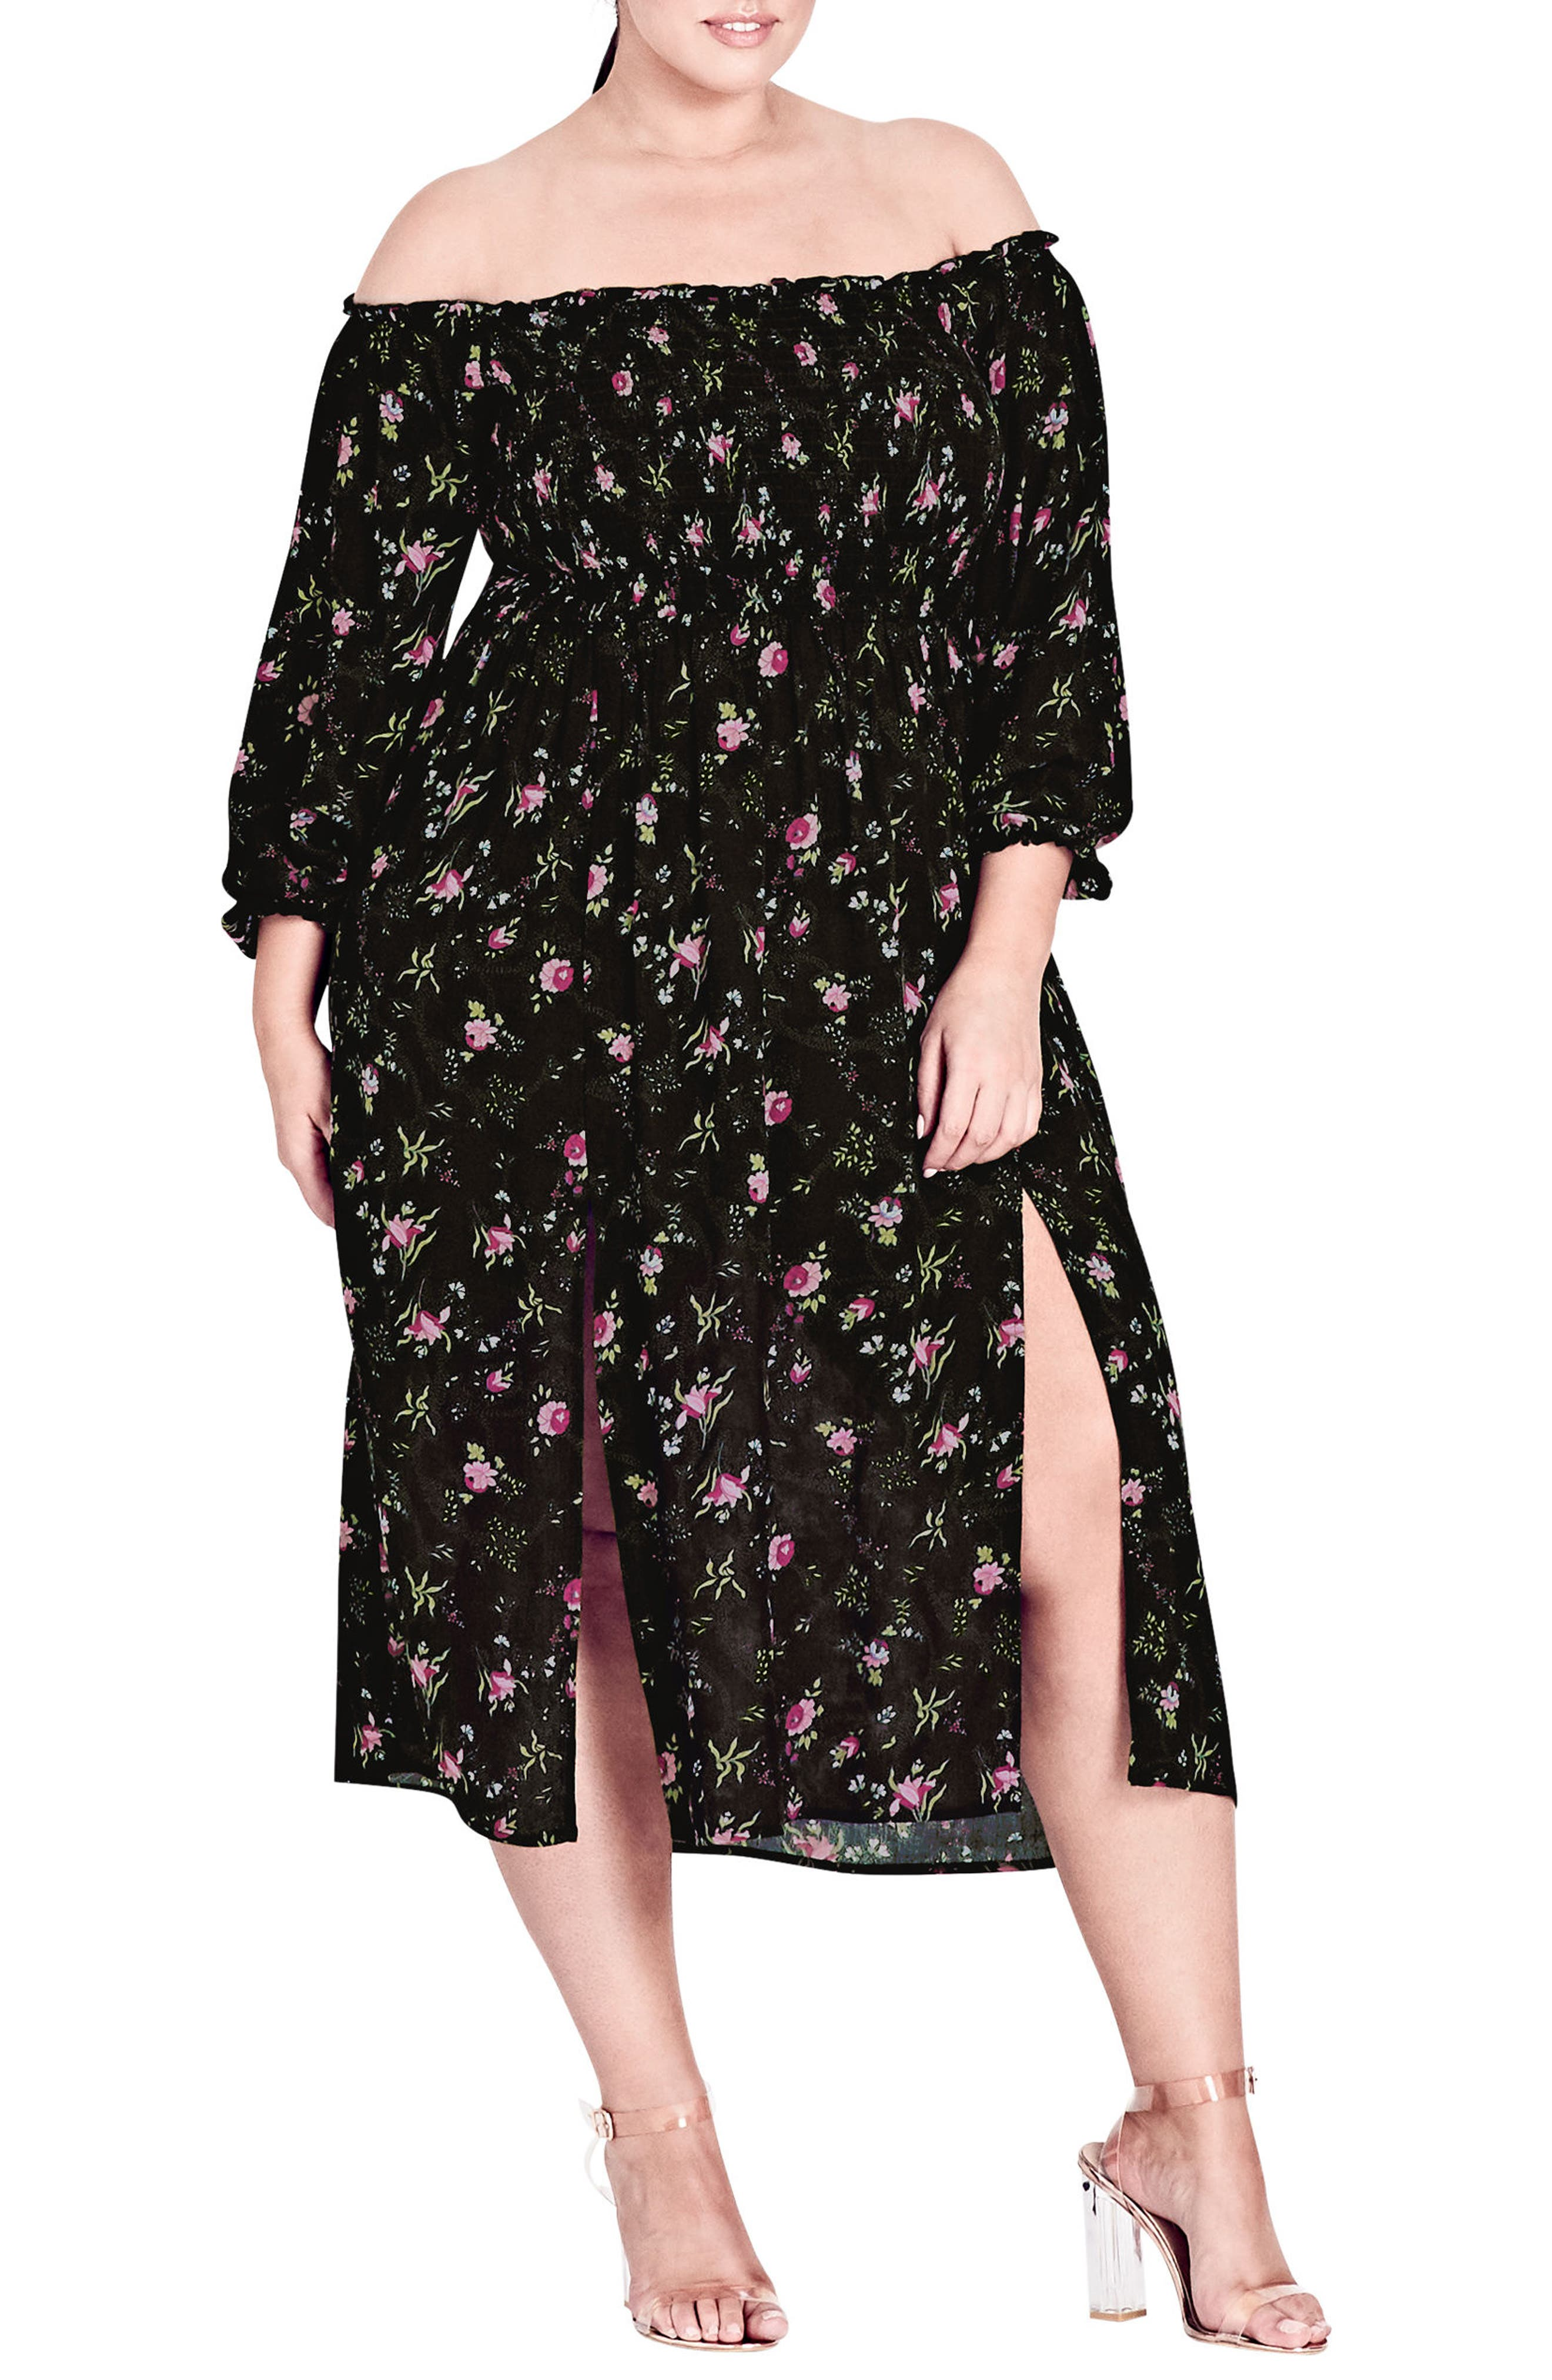 CITY CHIC Garden Floral Off the Shoulder Dress, Main, color, 001